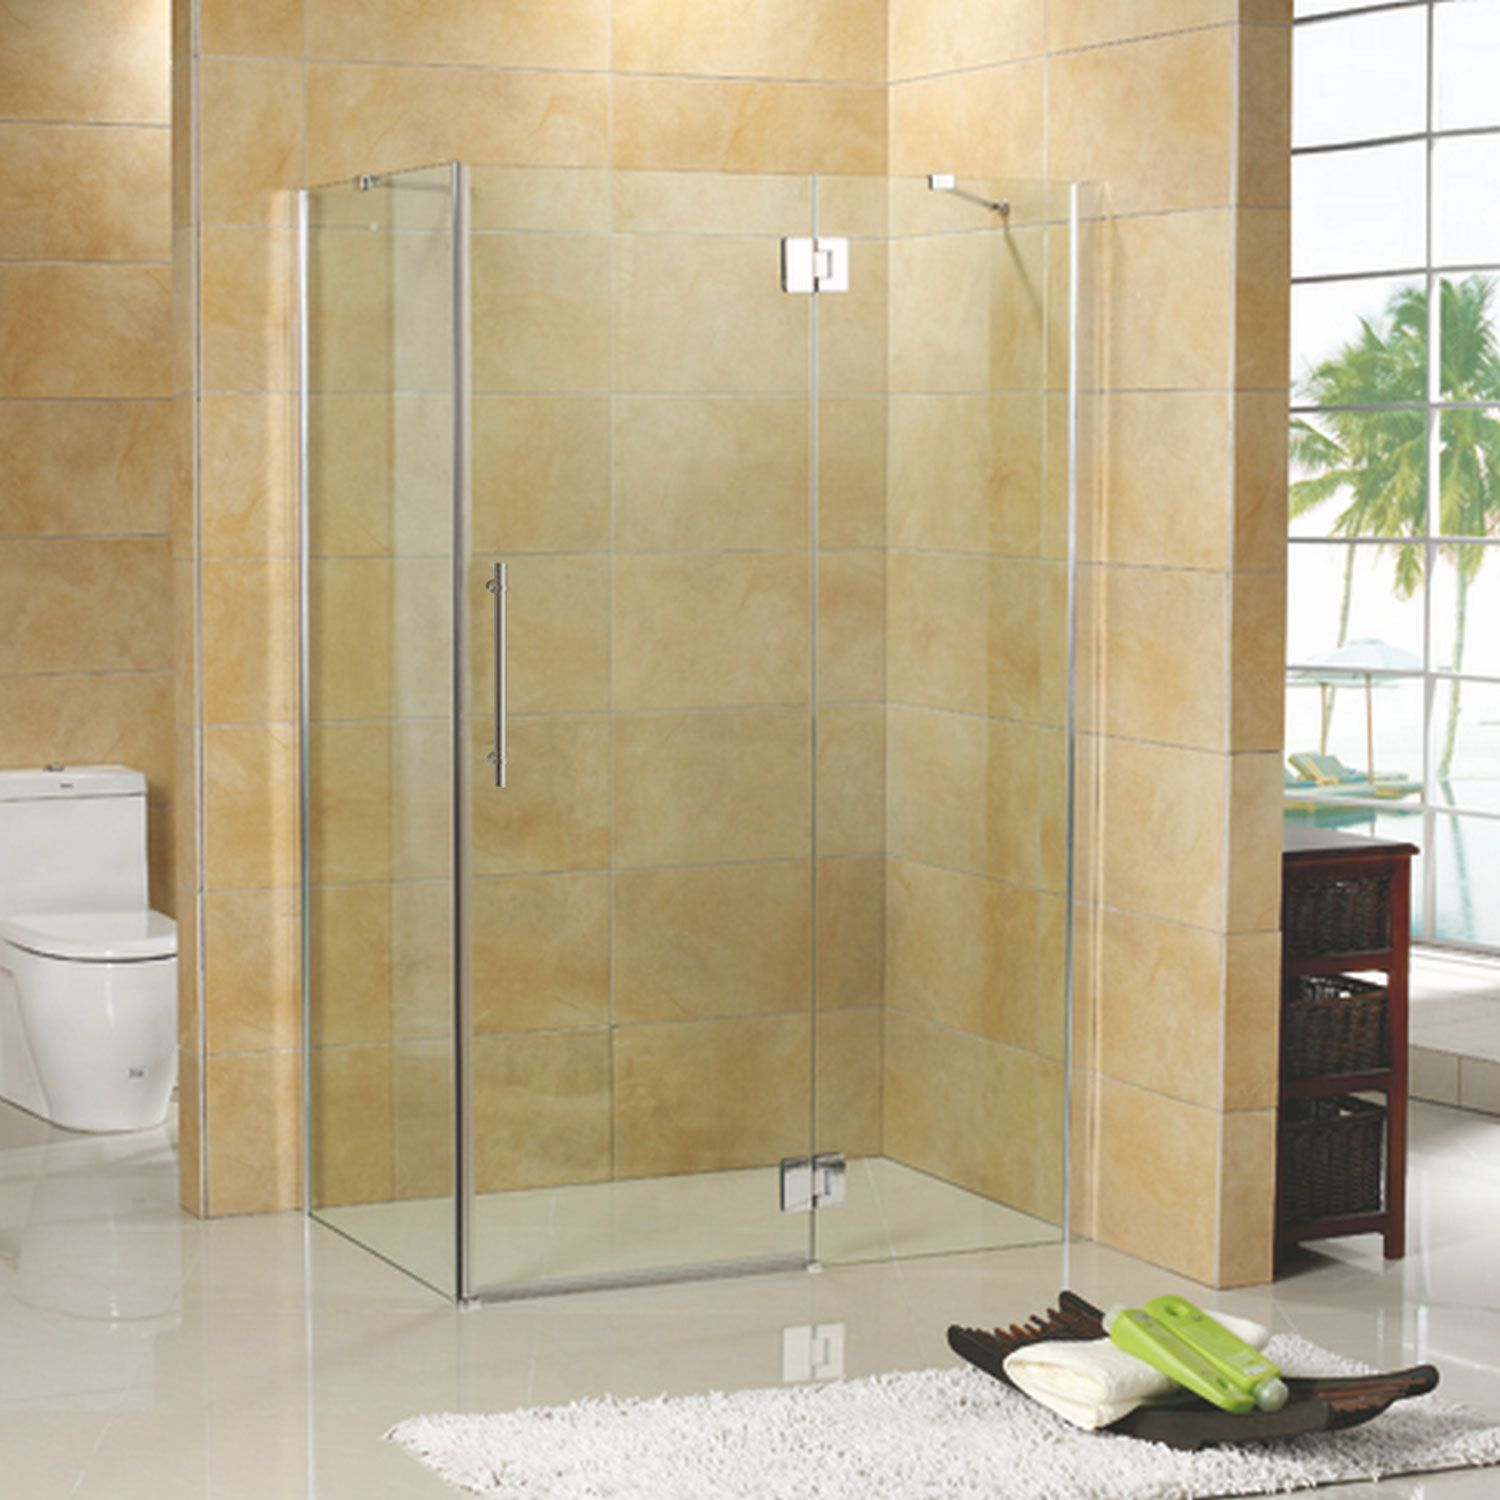 46 X 34 Suzanne Corner Shower Enclosure With Tray Right